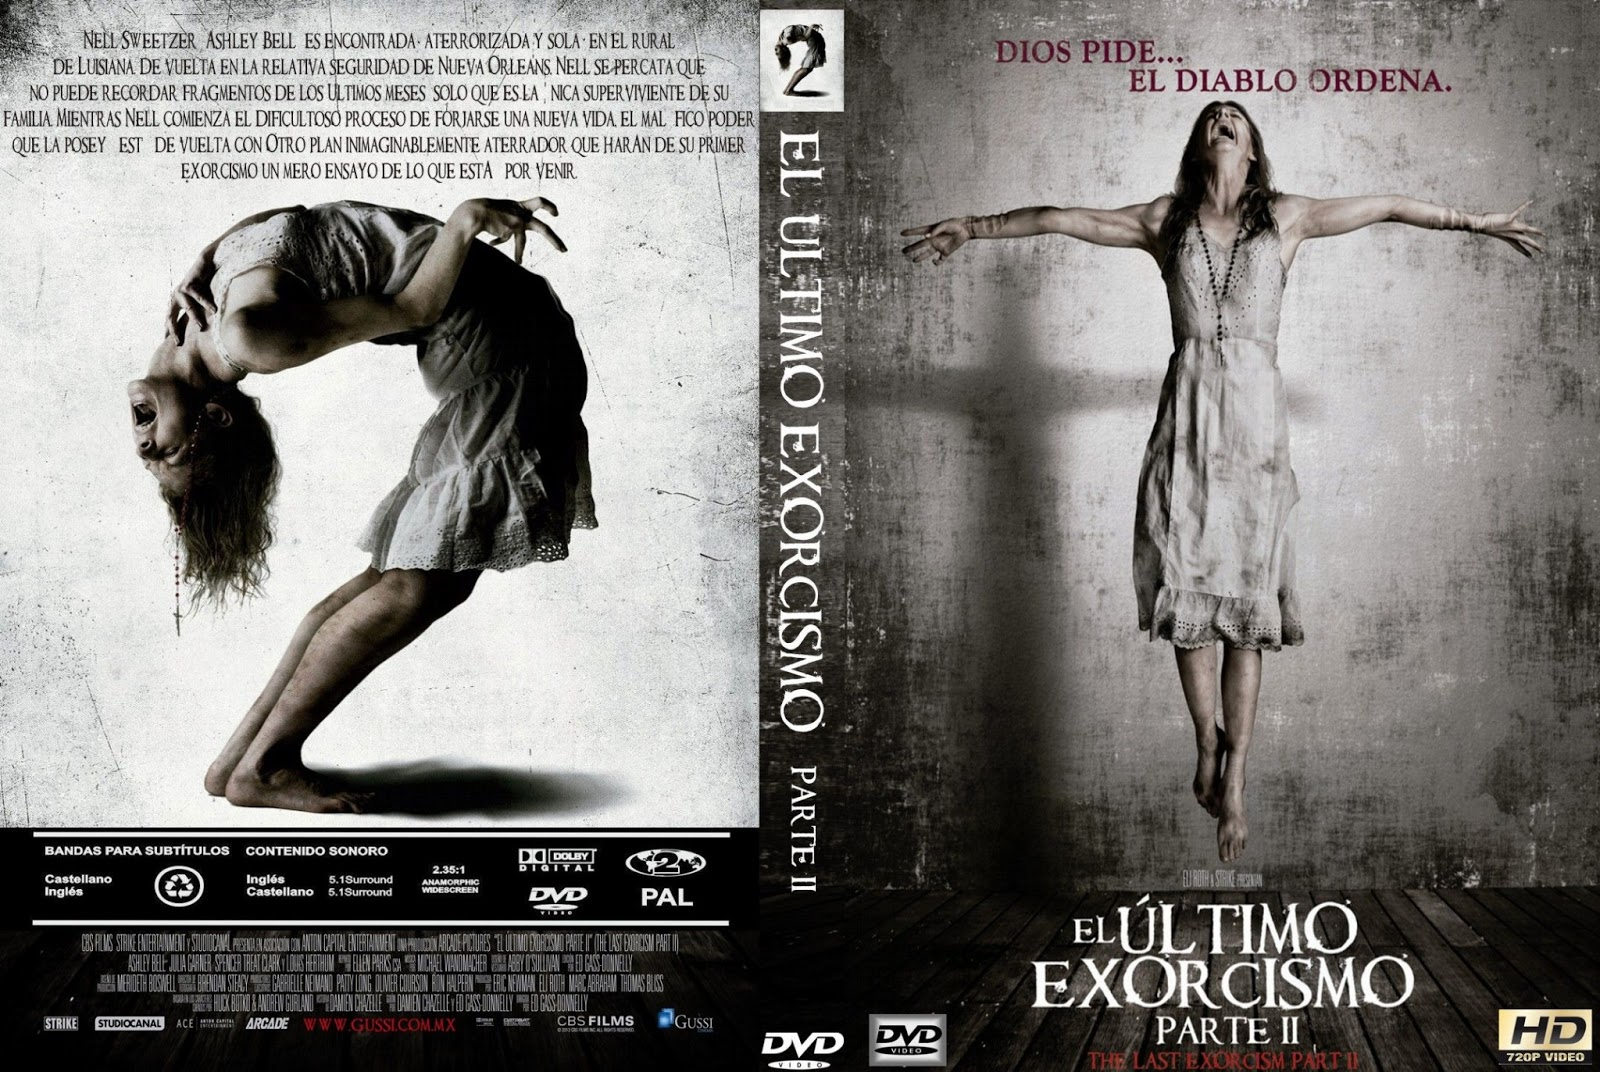 The Last Exorcism 2 Dvd Cover 2 - the last exorcism 2